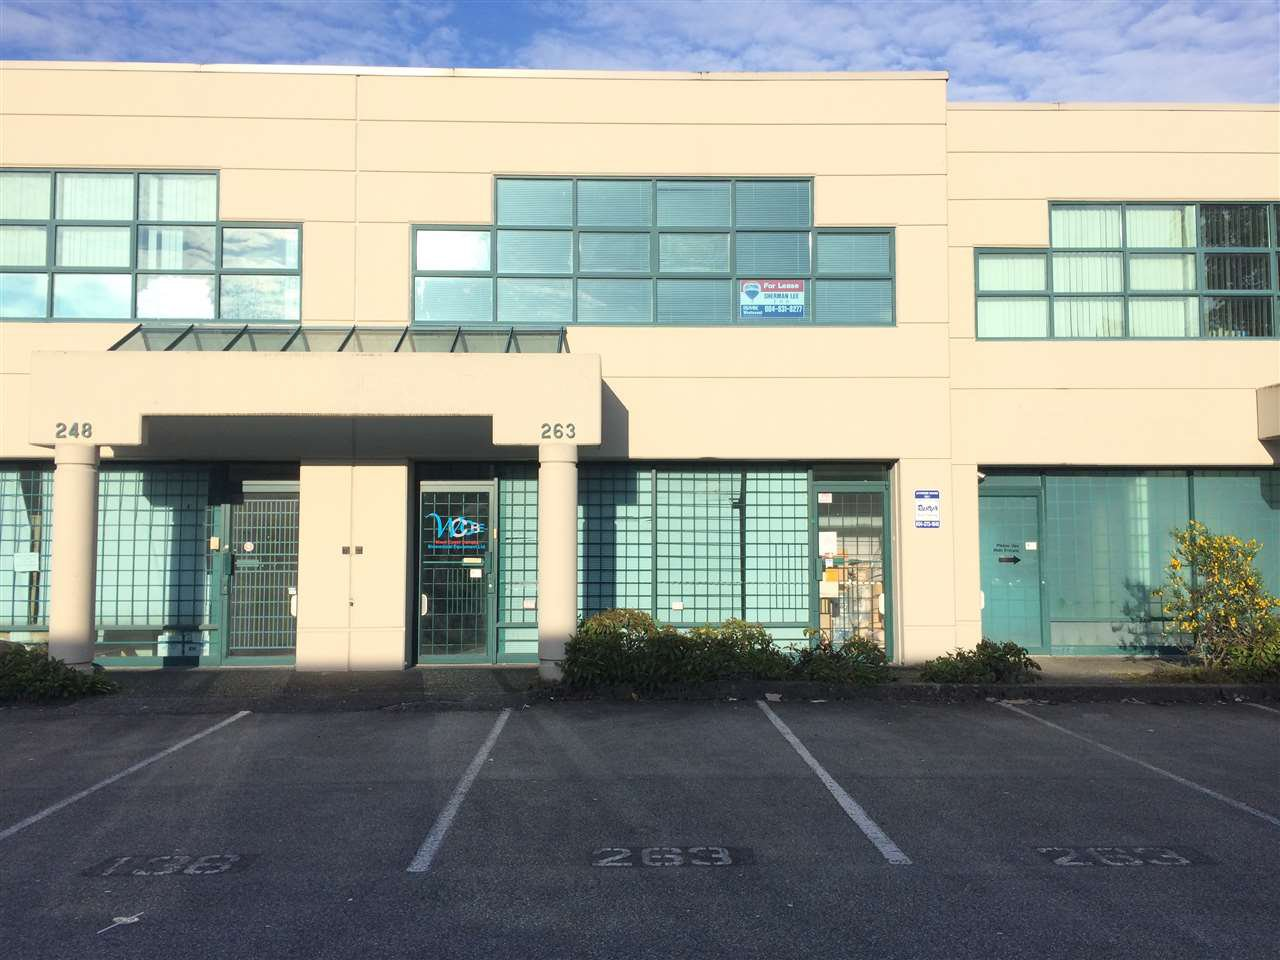 Main Photo: 263 13986 CAMBIE ROAD in Richmond: East Cambie Industrial for lease : MLS®# C8012479